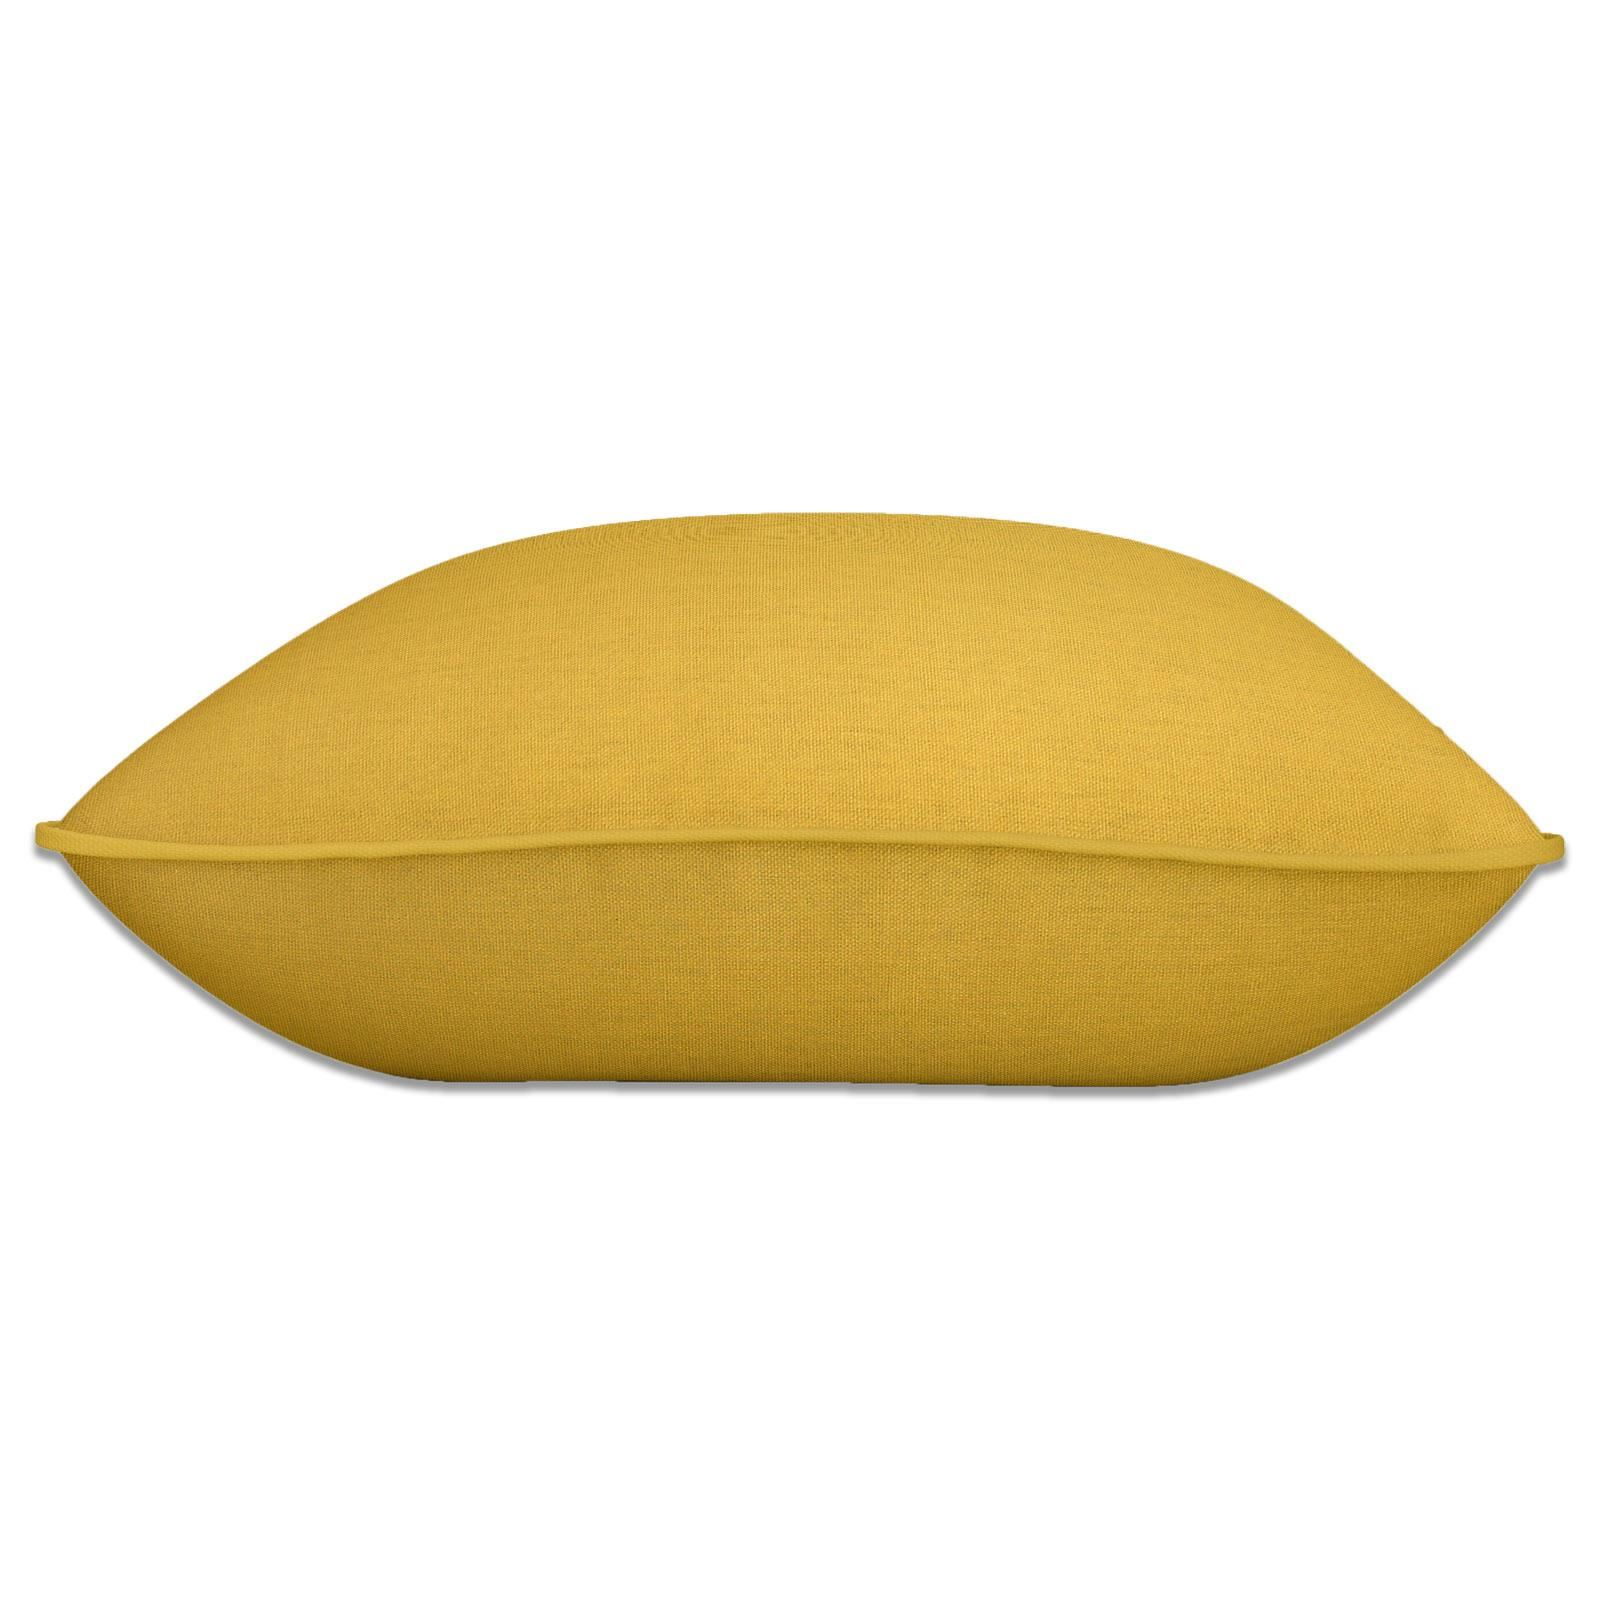 Grey-Ochre-Mustard-Cushion-Cover-Collection-17-034-18-034-Covers-Filled-Cushions thumbnail 69